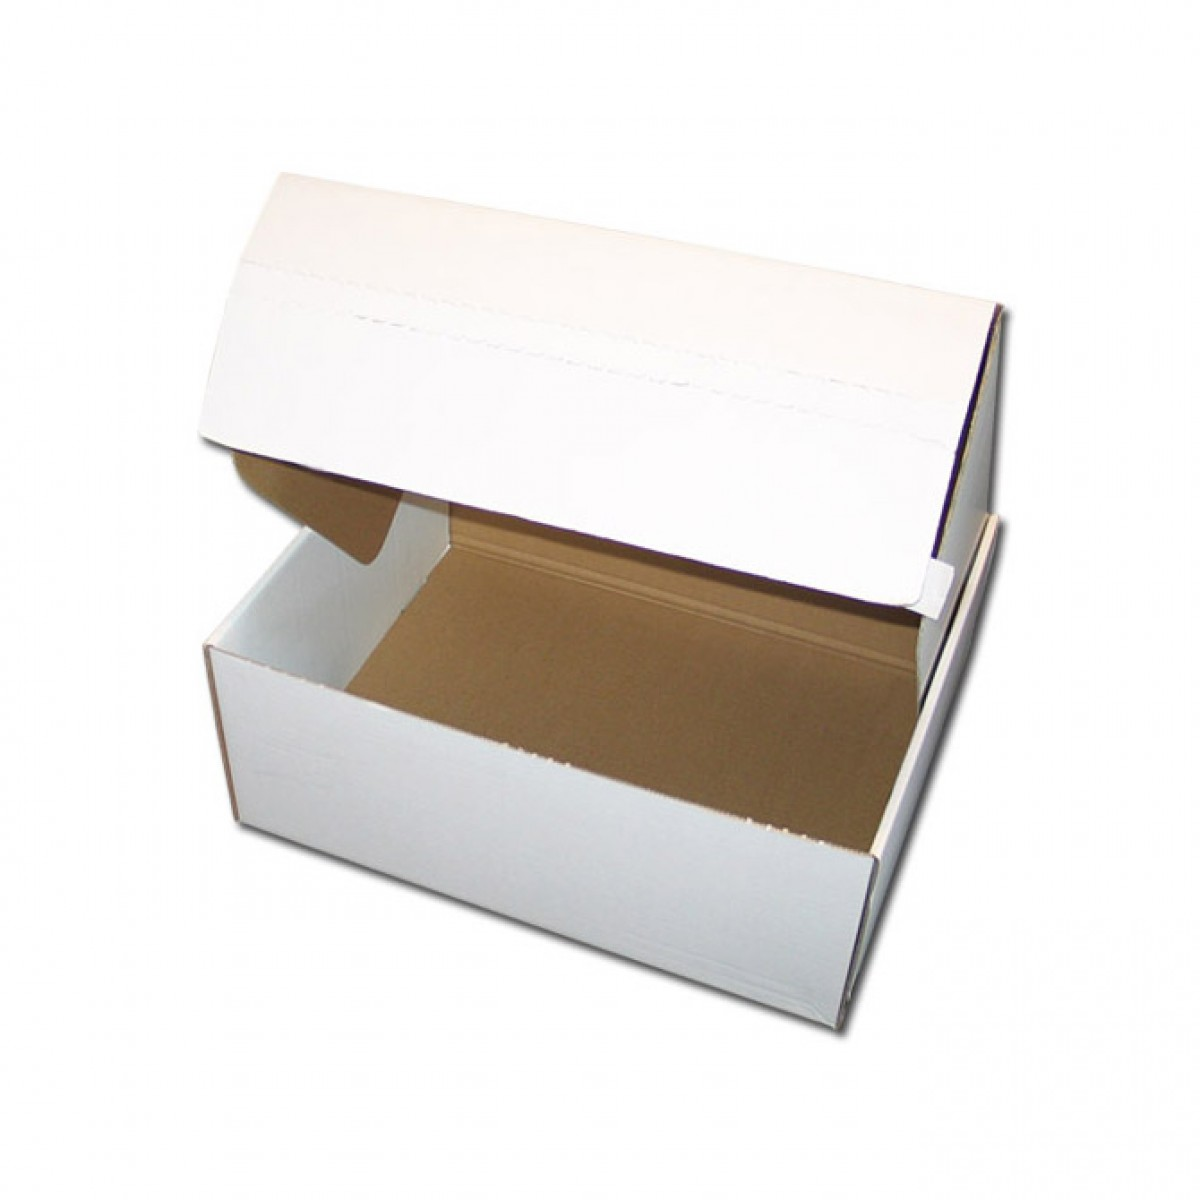 Easybox white 382 x 292 x 150 mm